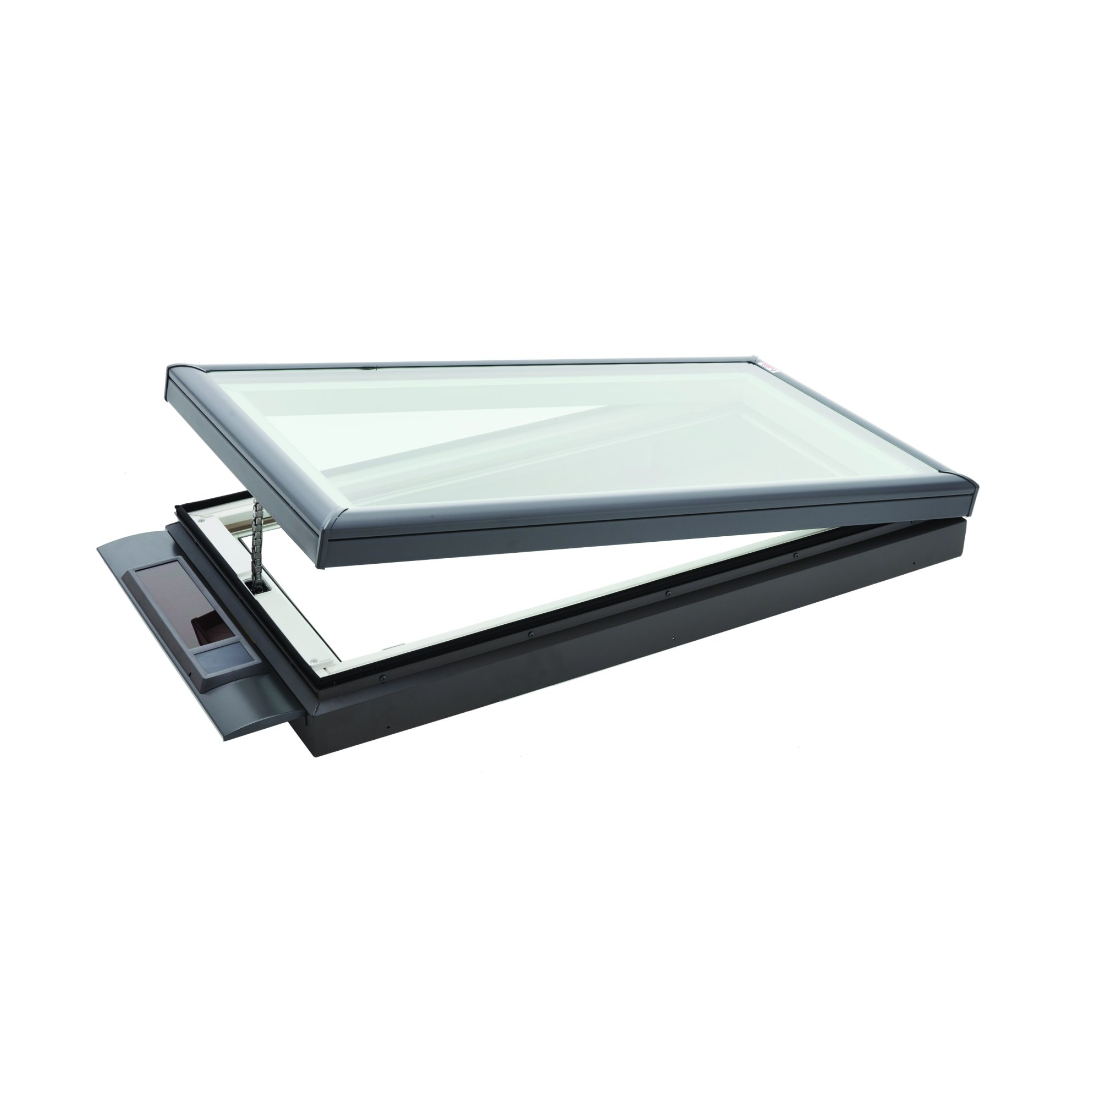 Low Pitch Solar Opening Skylight 692 x 1302mm